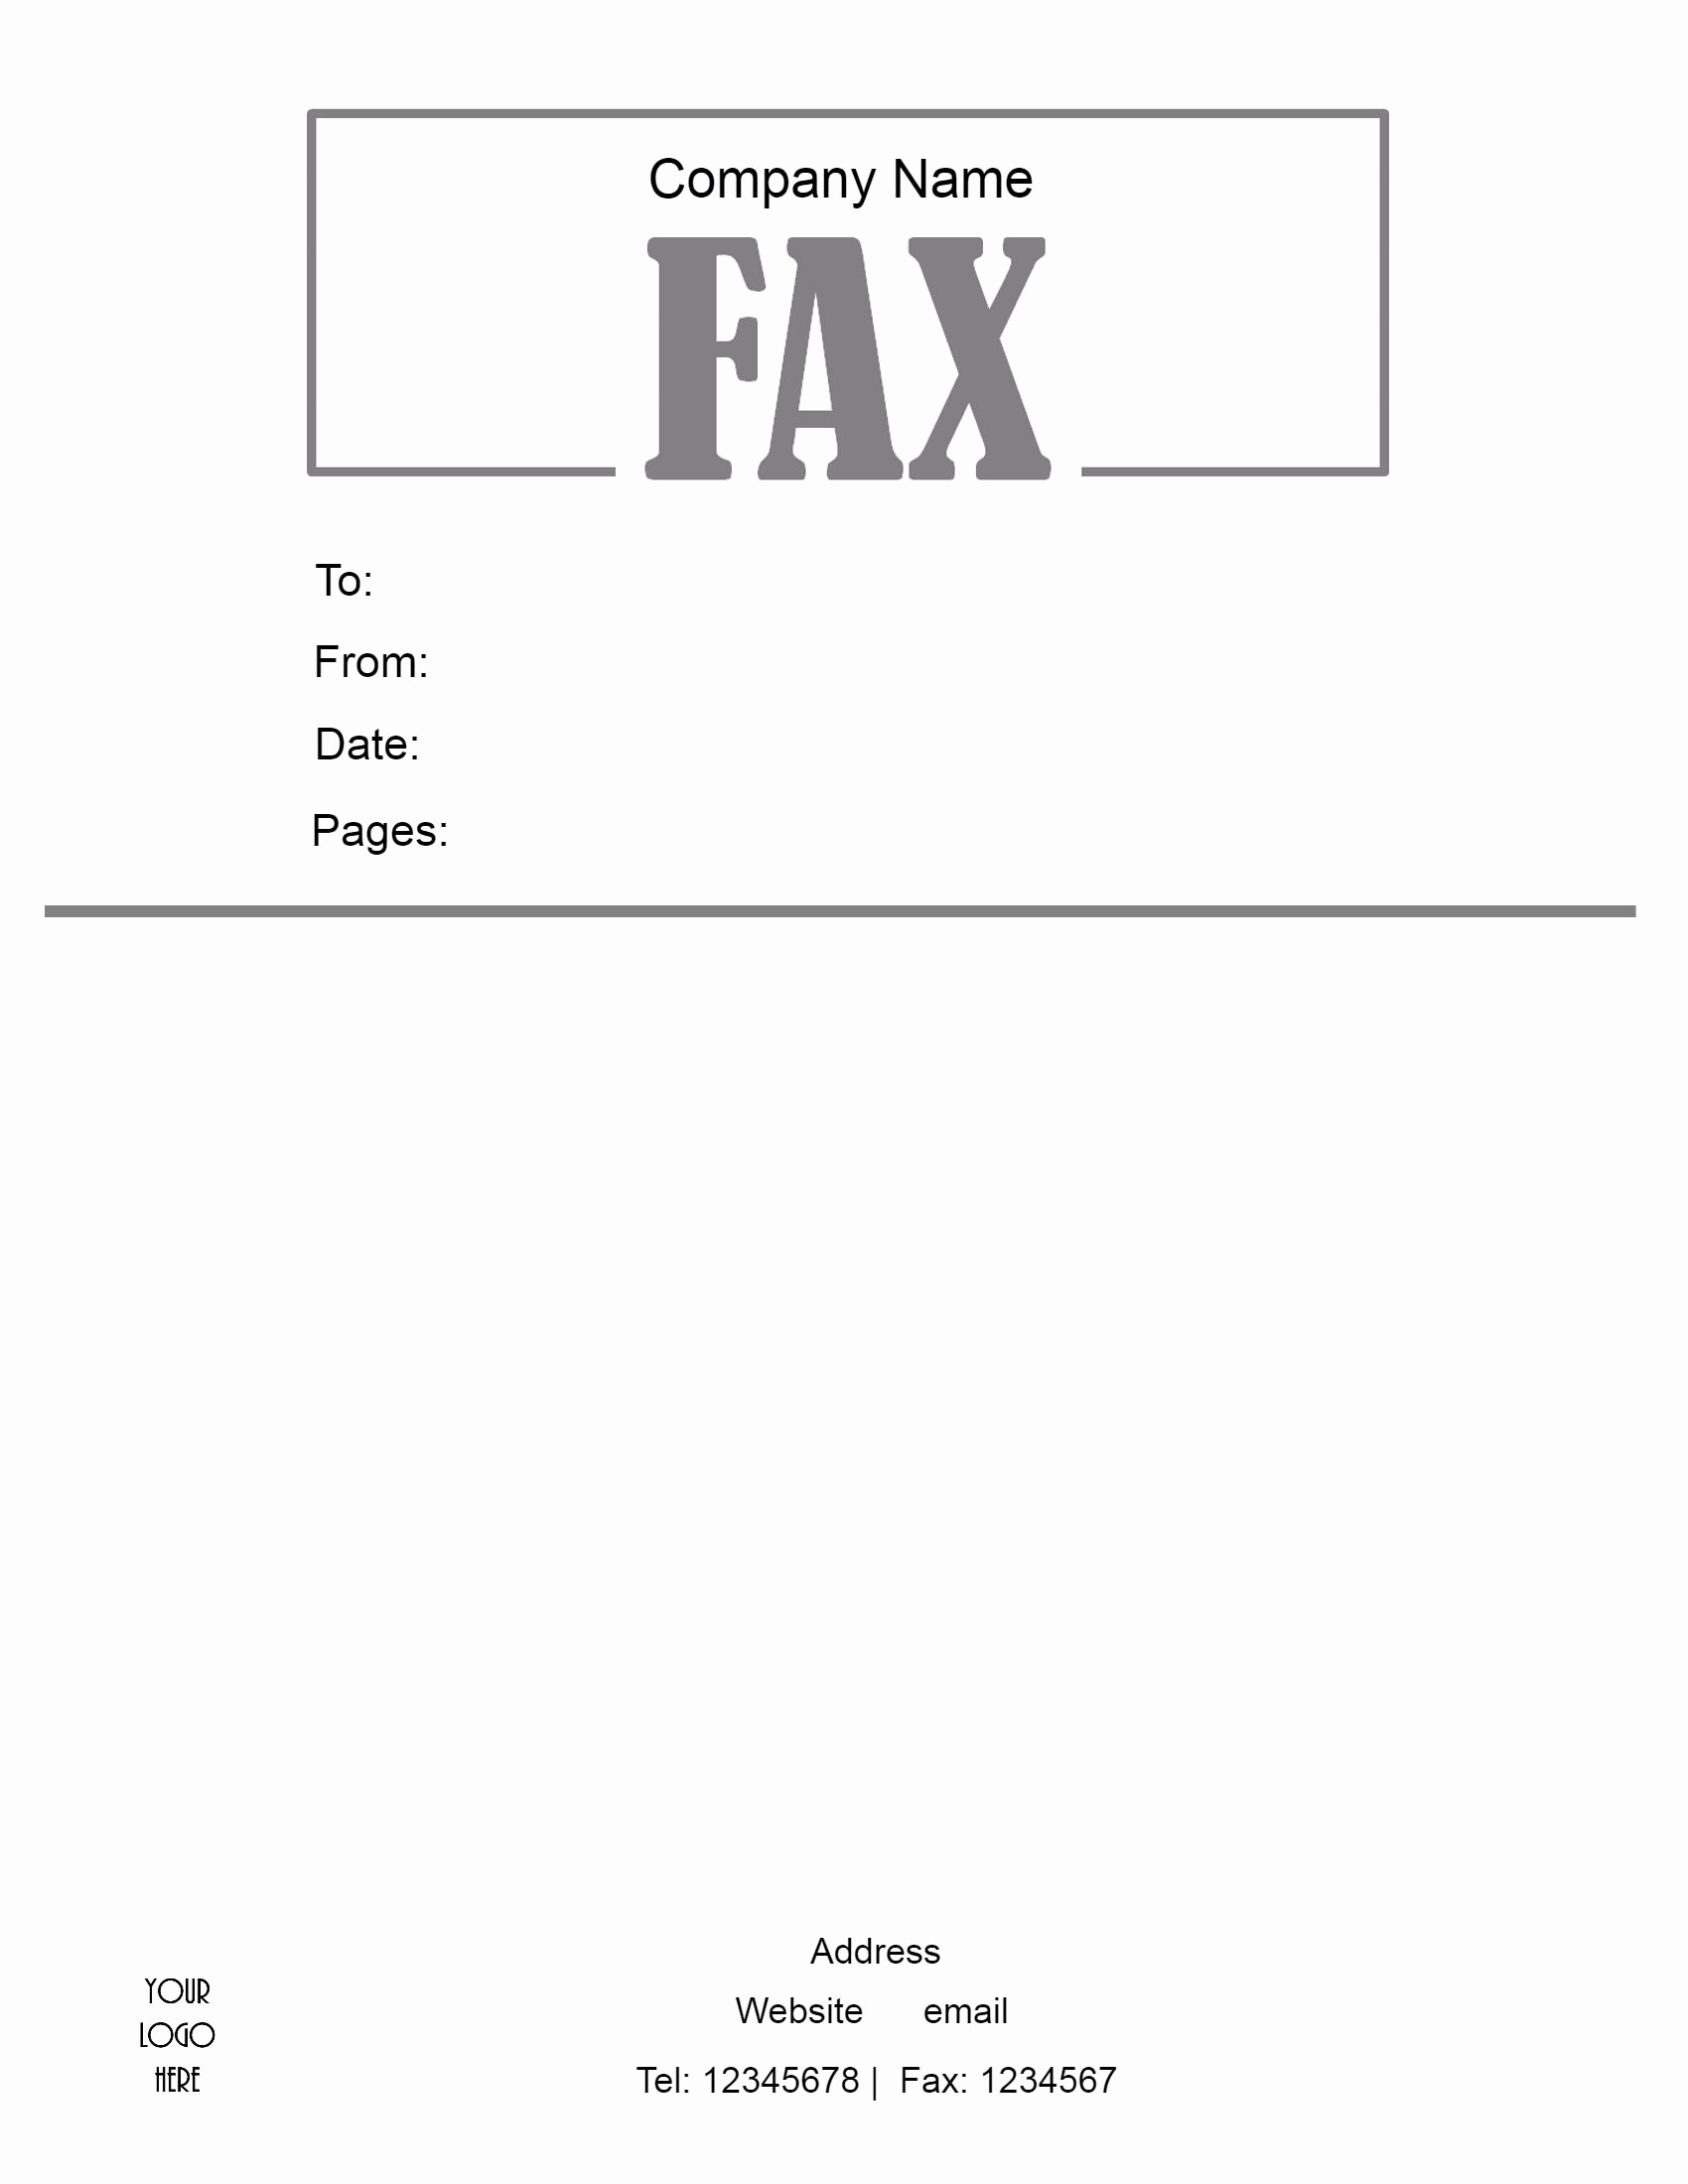 Fax Cover Sheet Pdf Free Unique Free Fax Cover Sheet Template format Example Pdf Printable